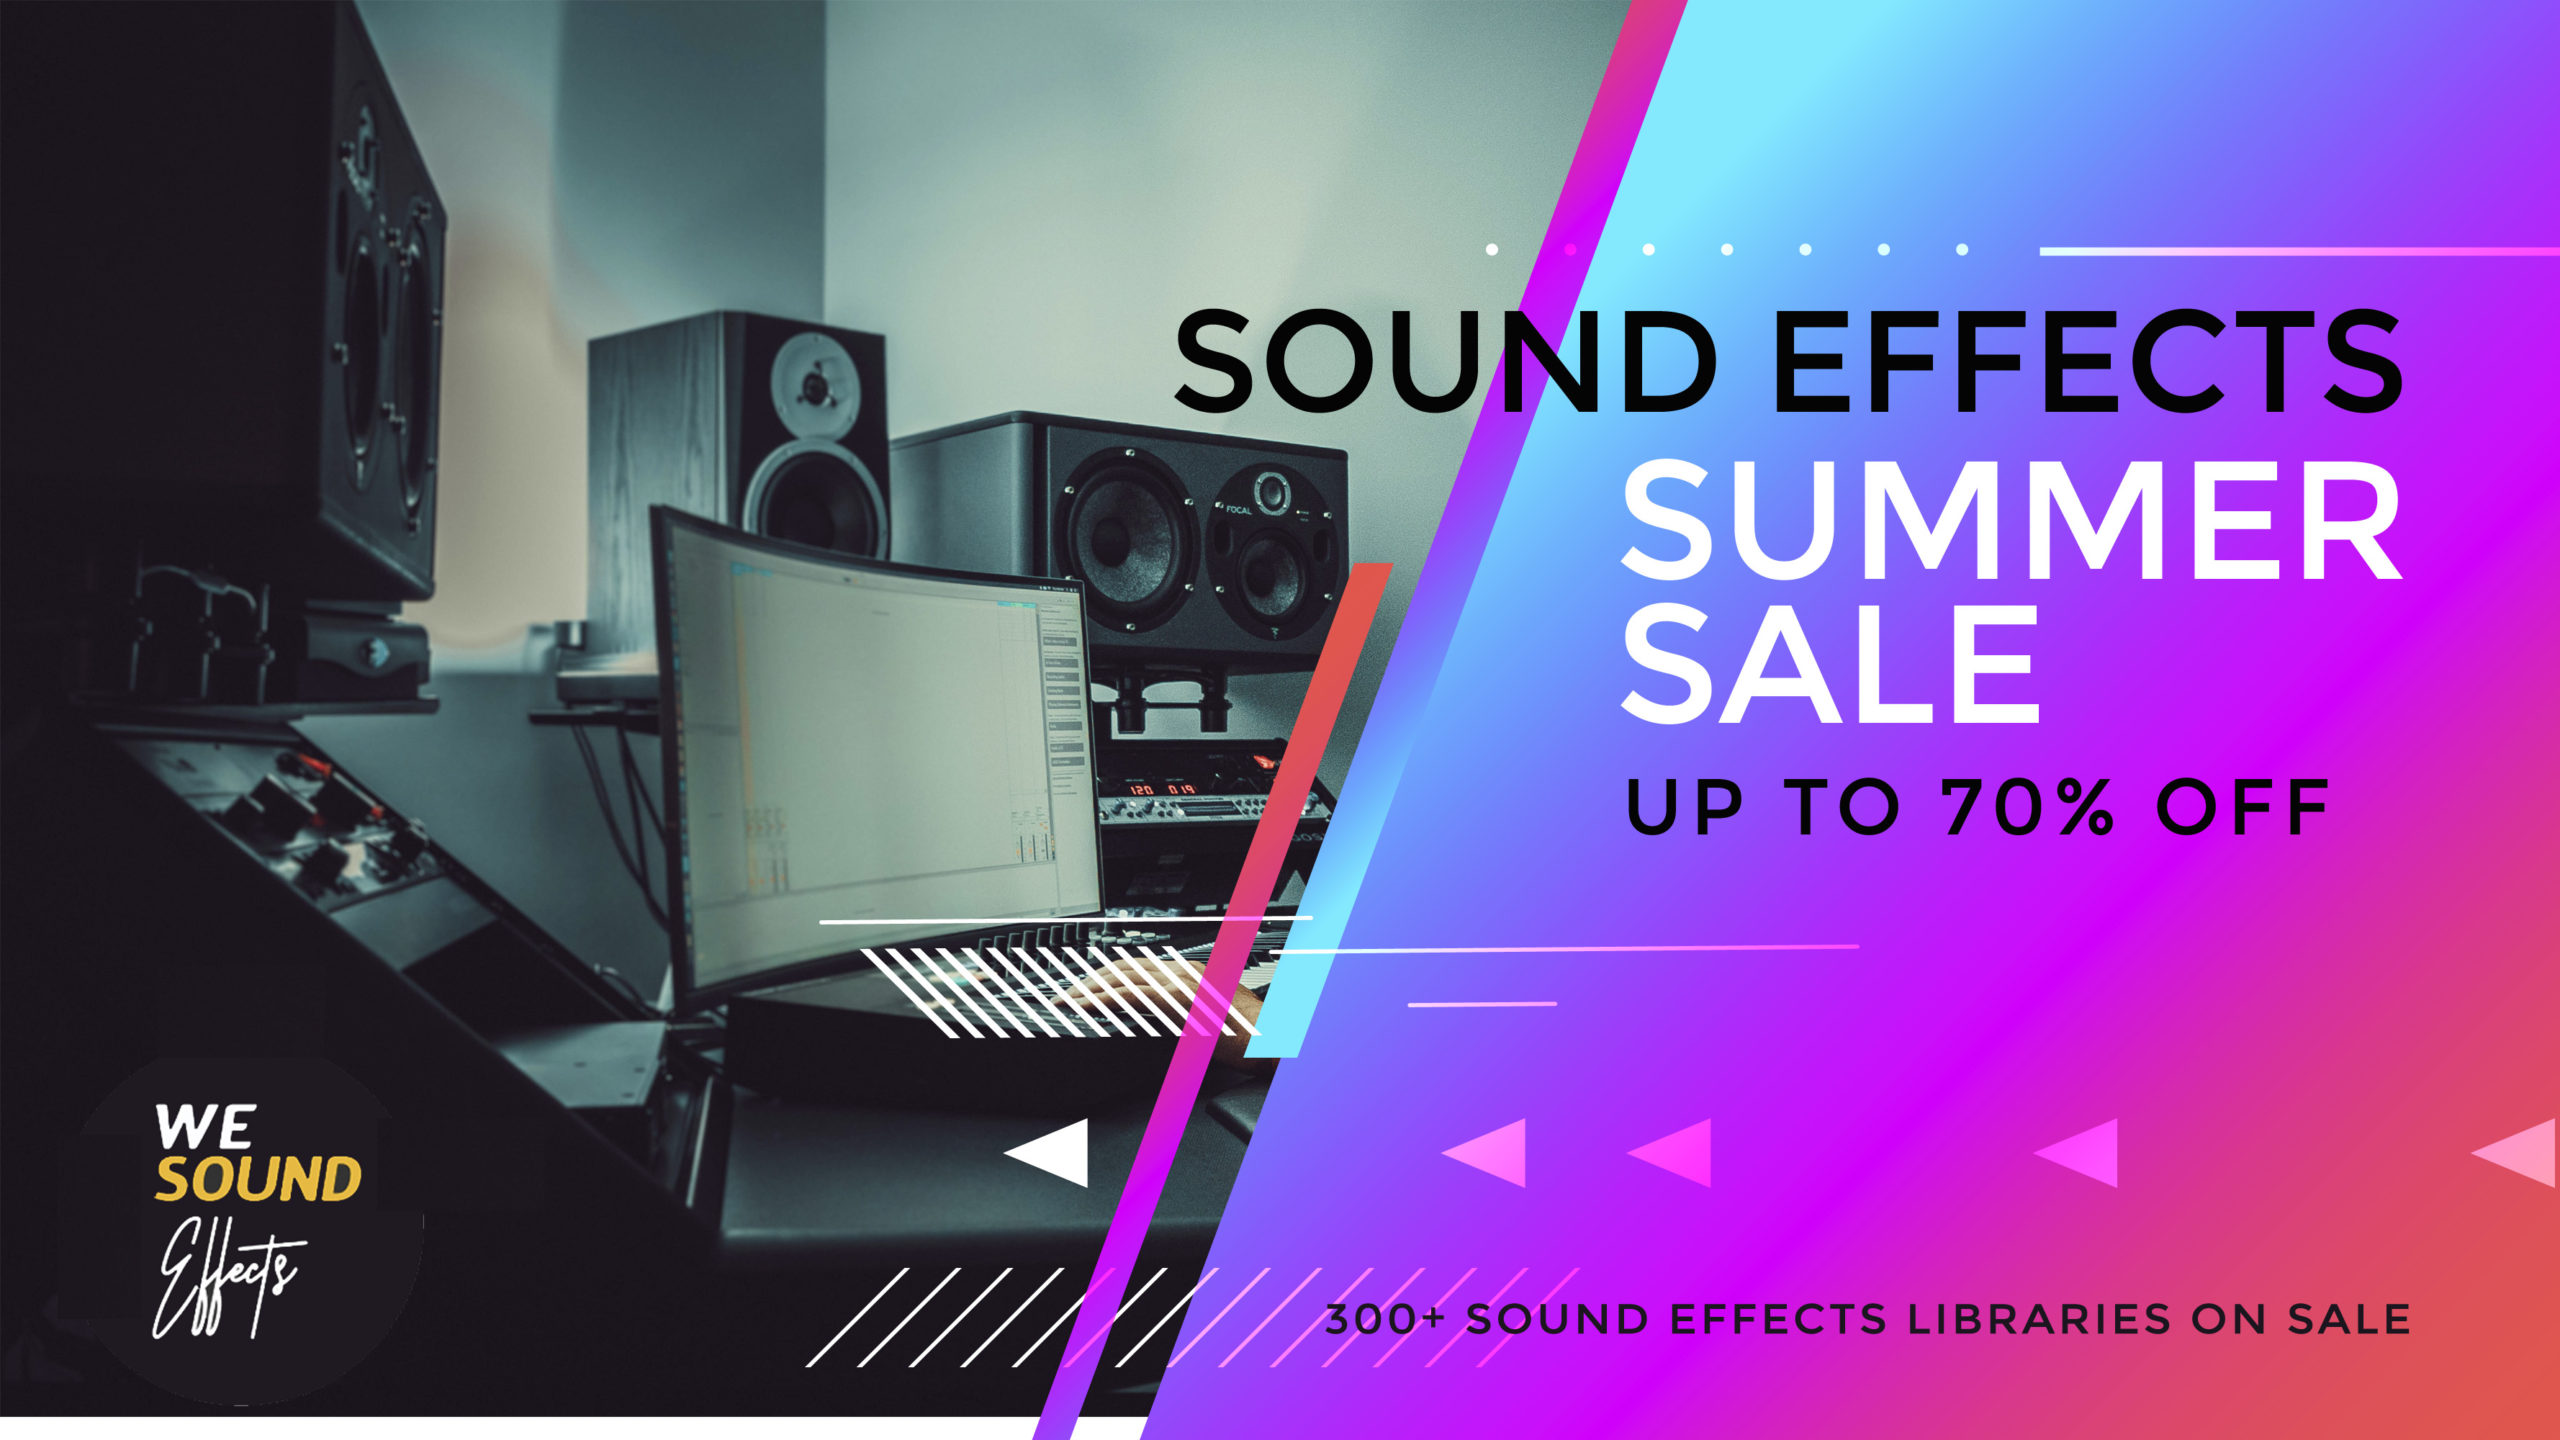 We Sound Effects Summer Sale up to 70% OFF